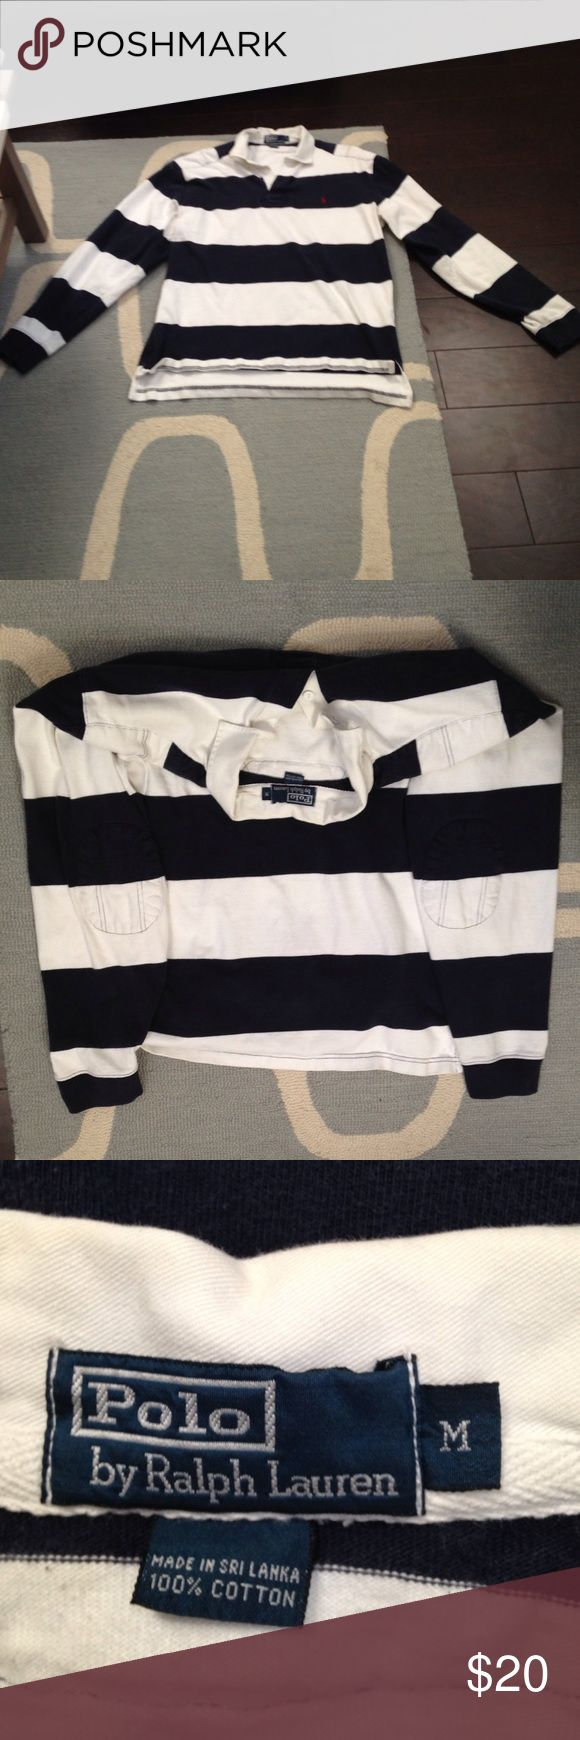 Men's long sleeve Polo shirt- GREAT CONDITION! Men's long sleeve Polo by Ralph Lauren shirt. Minimal padding over shoulders and elbows, very solidly constructed! Polo by Ralph Lauren Shirts Polos